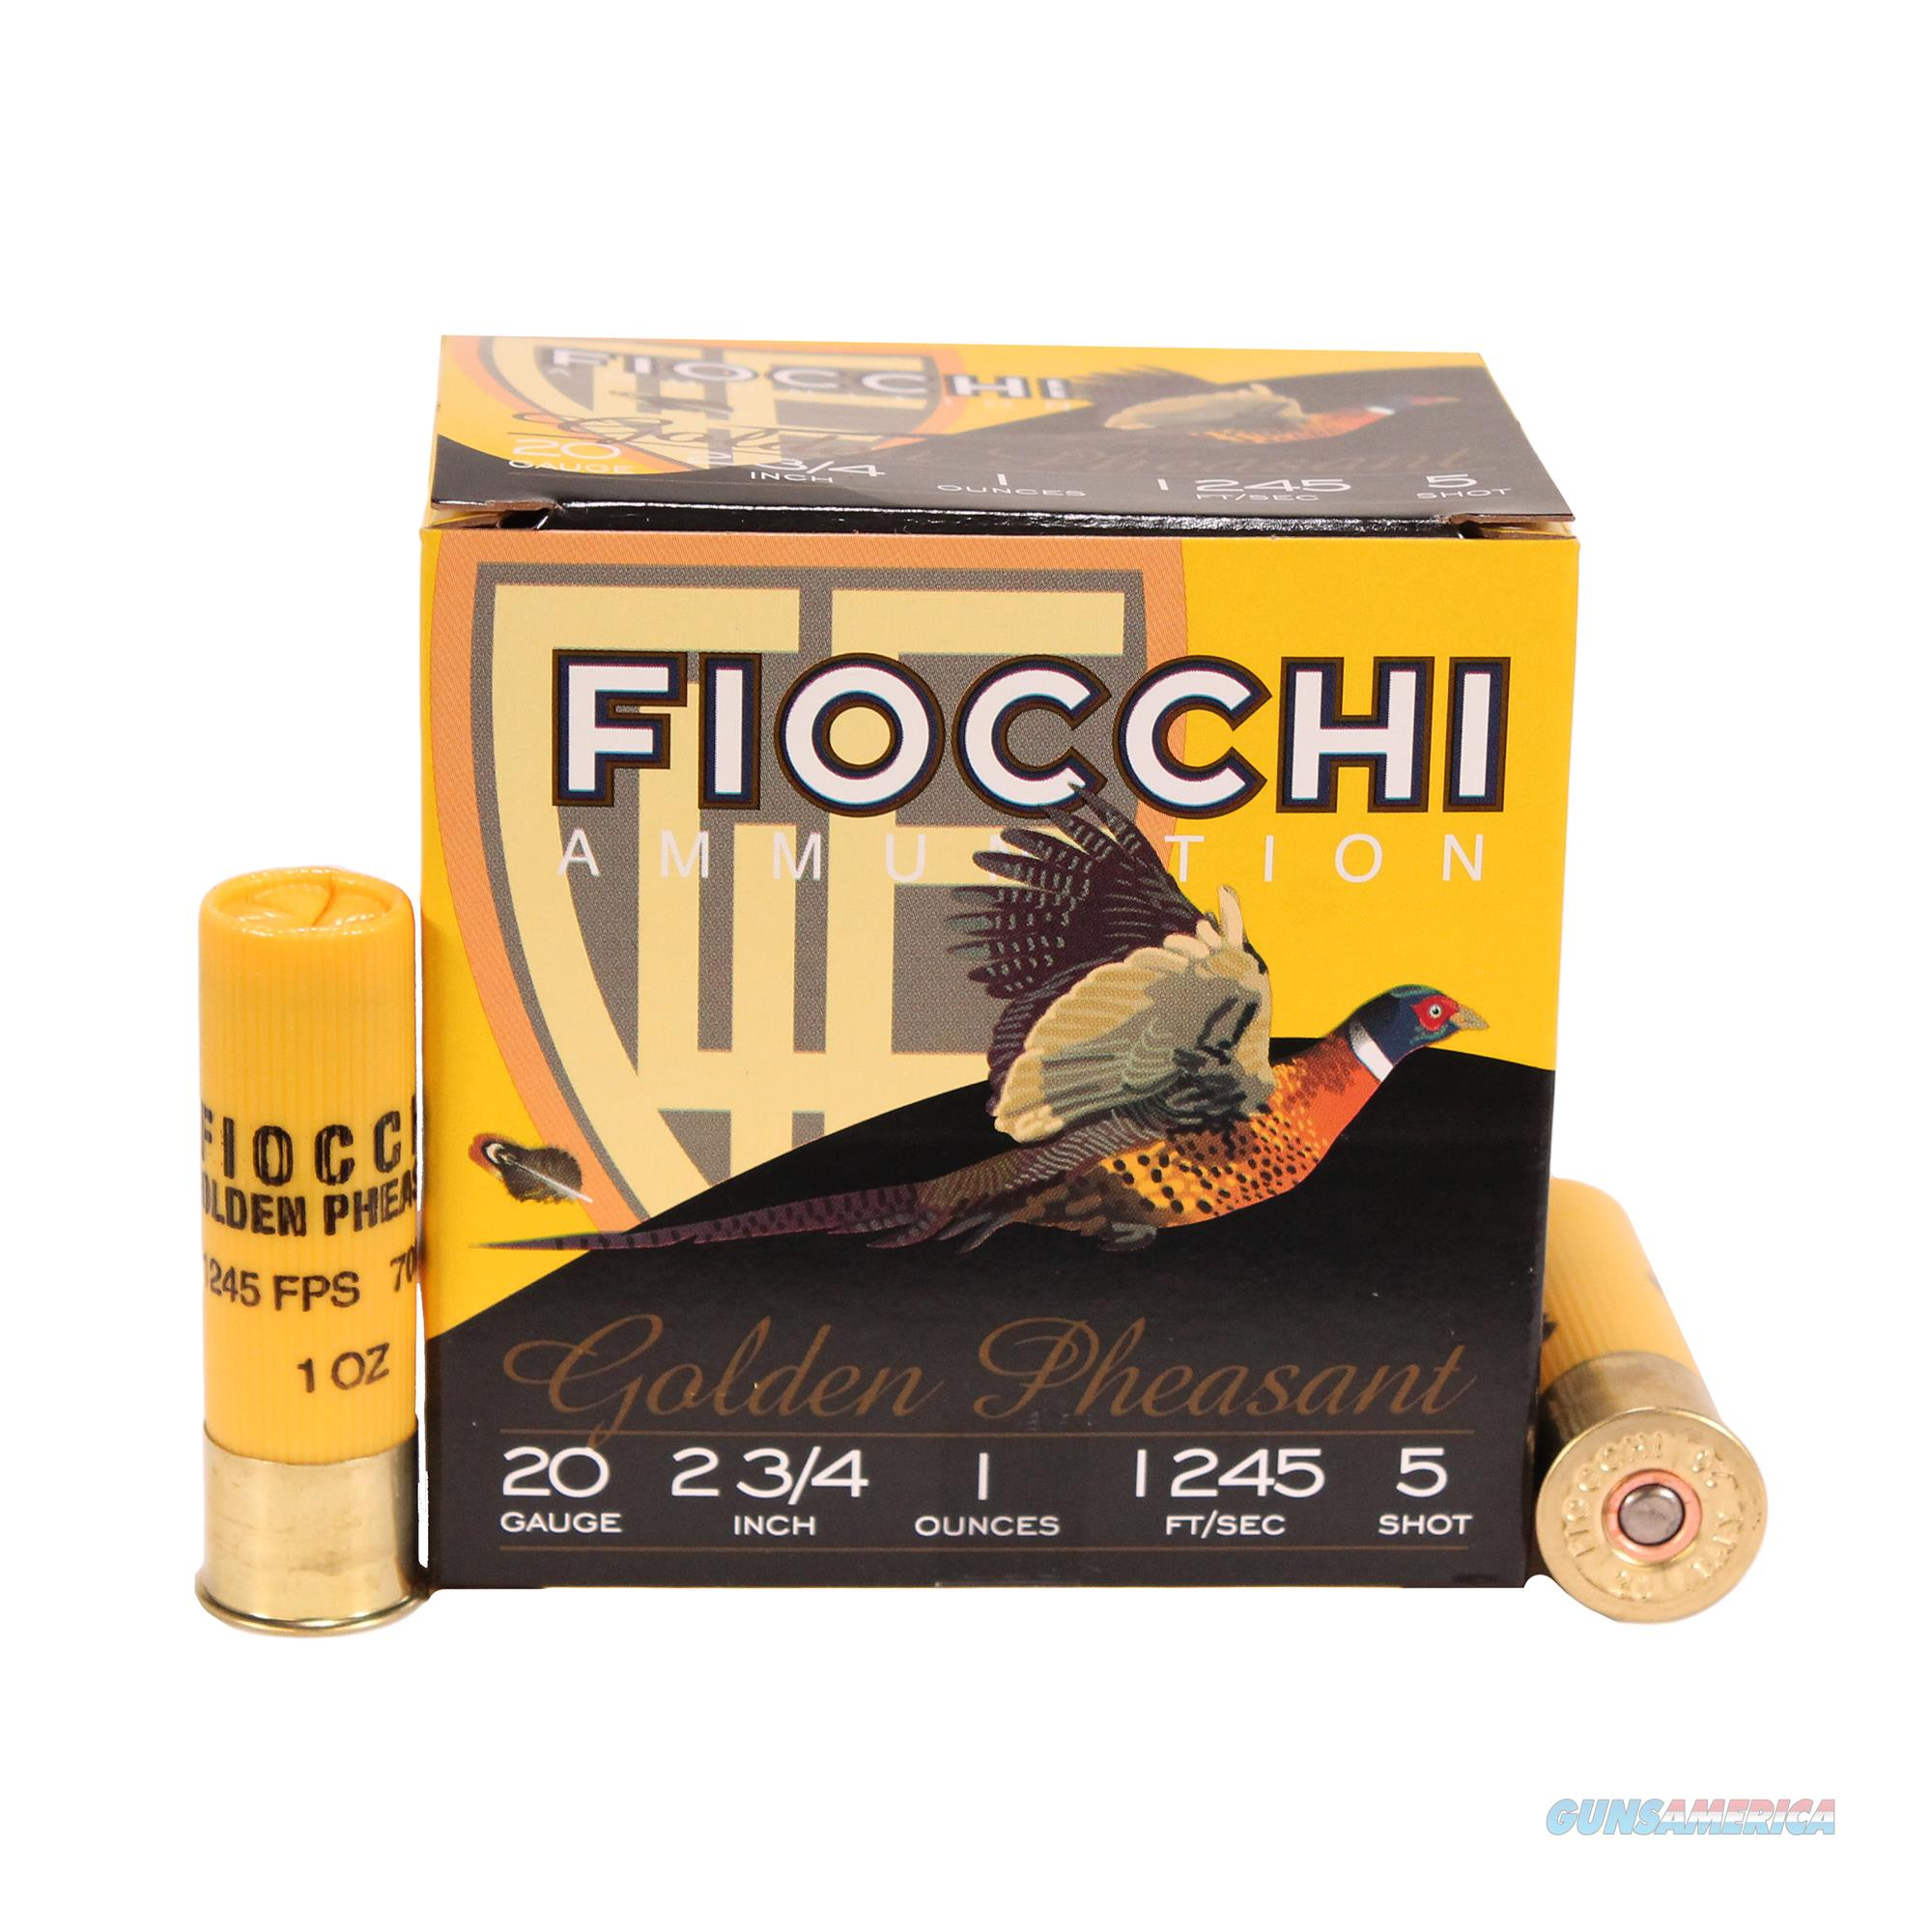 Fiocchi Golden Pheasant 20 Gauge 20GP5  Non-Guns > Ammunition